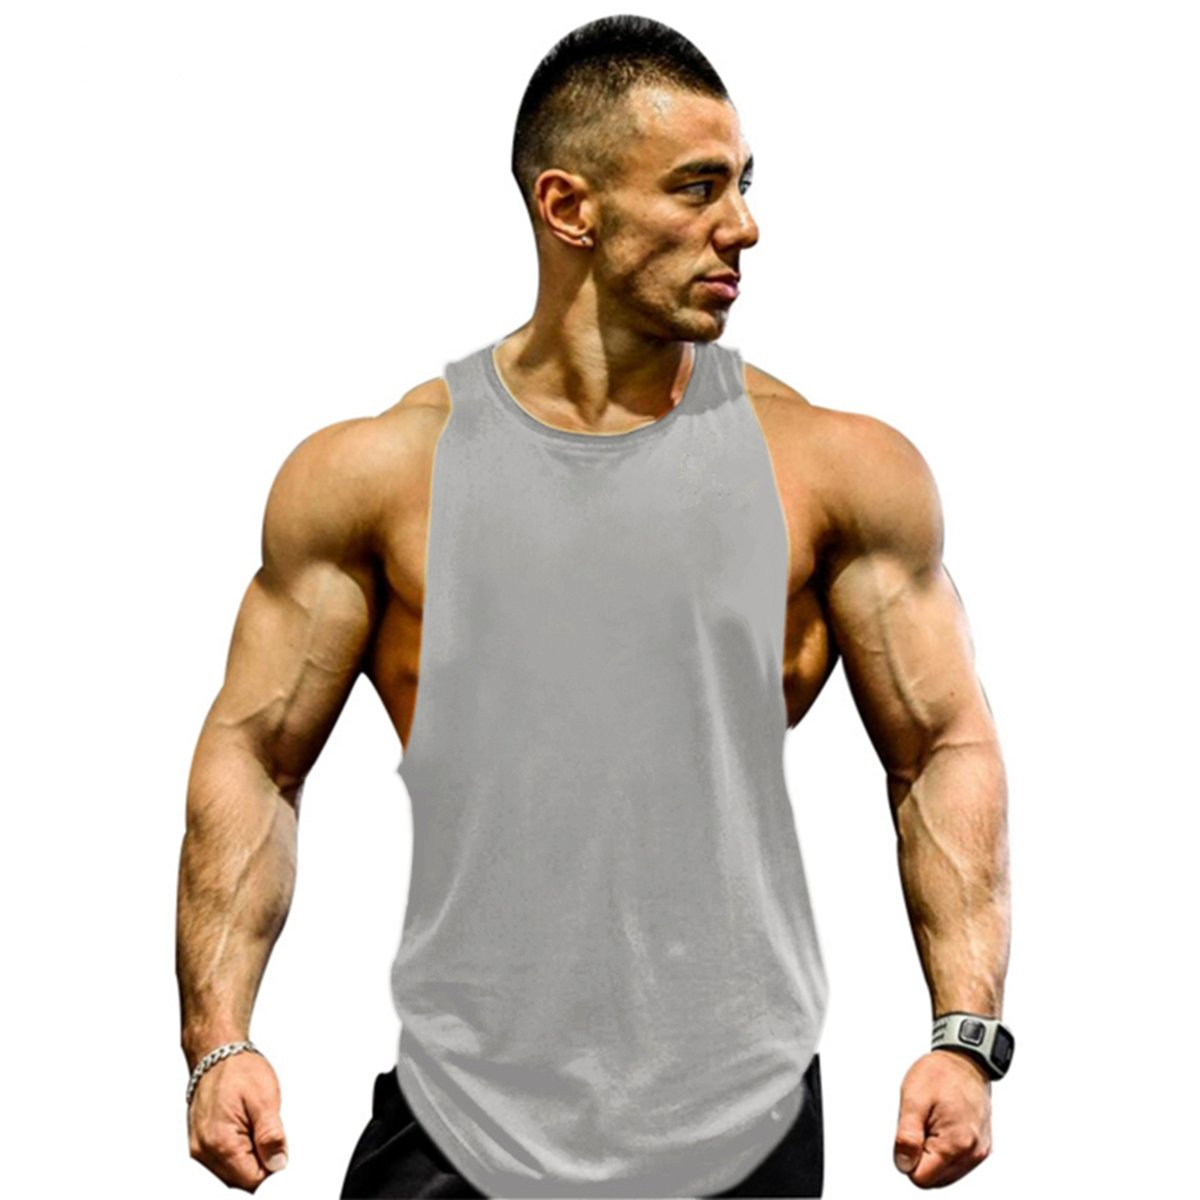 Running Vests Sports & Entertainment Mens Running Tank Top Bodybuilding Sleeveless T-shirt Suit Men Summer Sportwear Vest Sports Man Training Workout Gym Male Utmost In Convenience